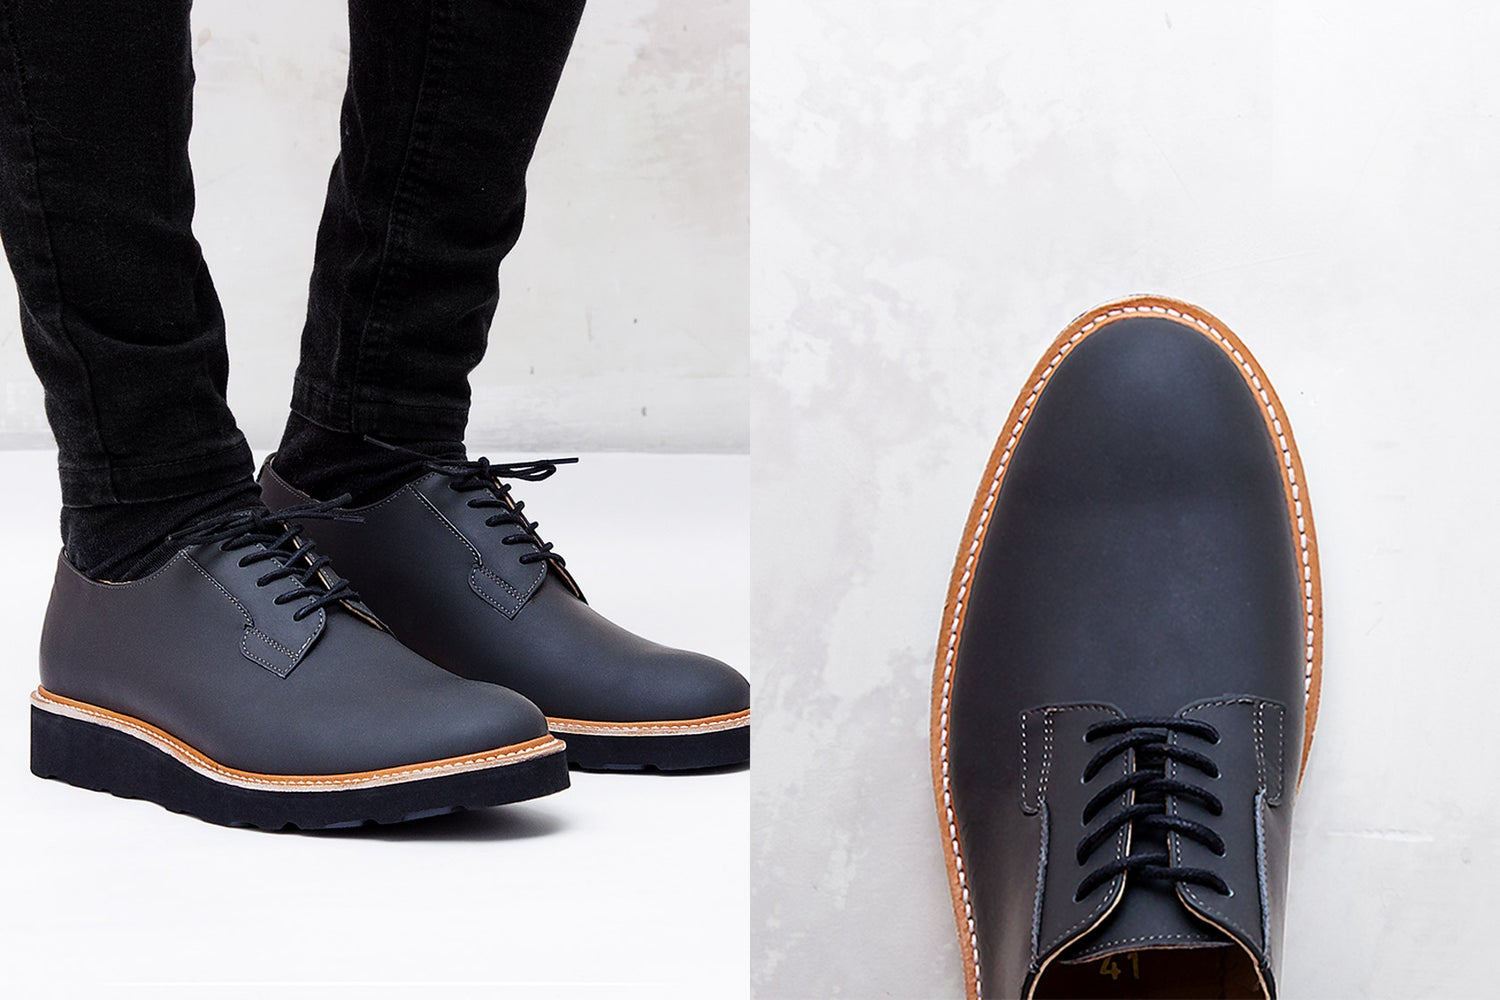 Image of Handmade Shoes | 101 Postman Dark Grey Edition